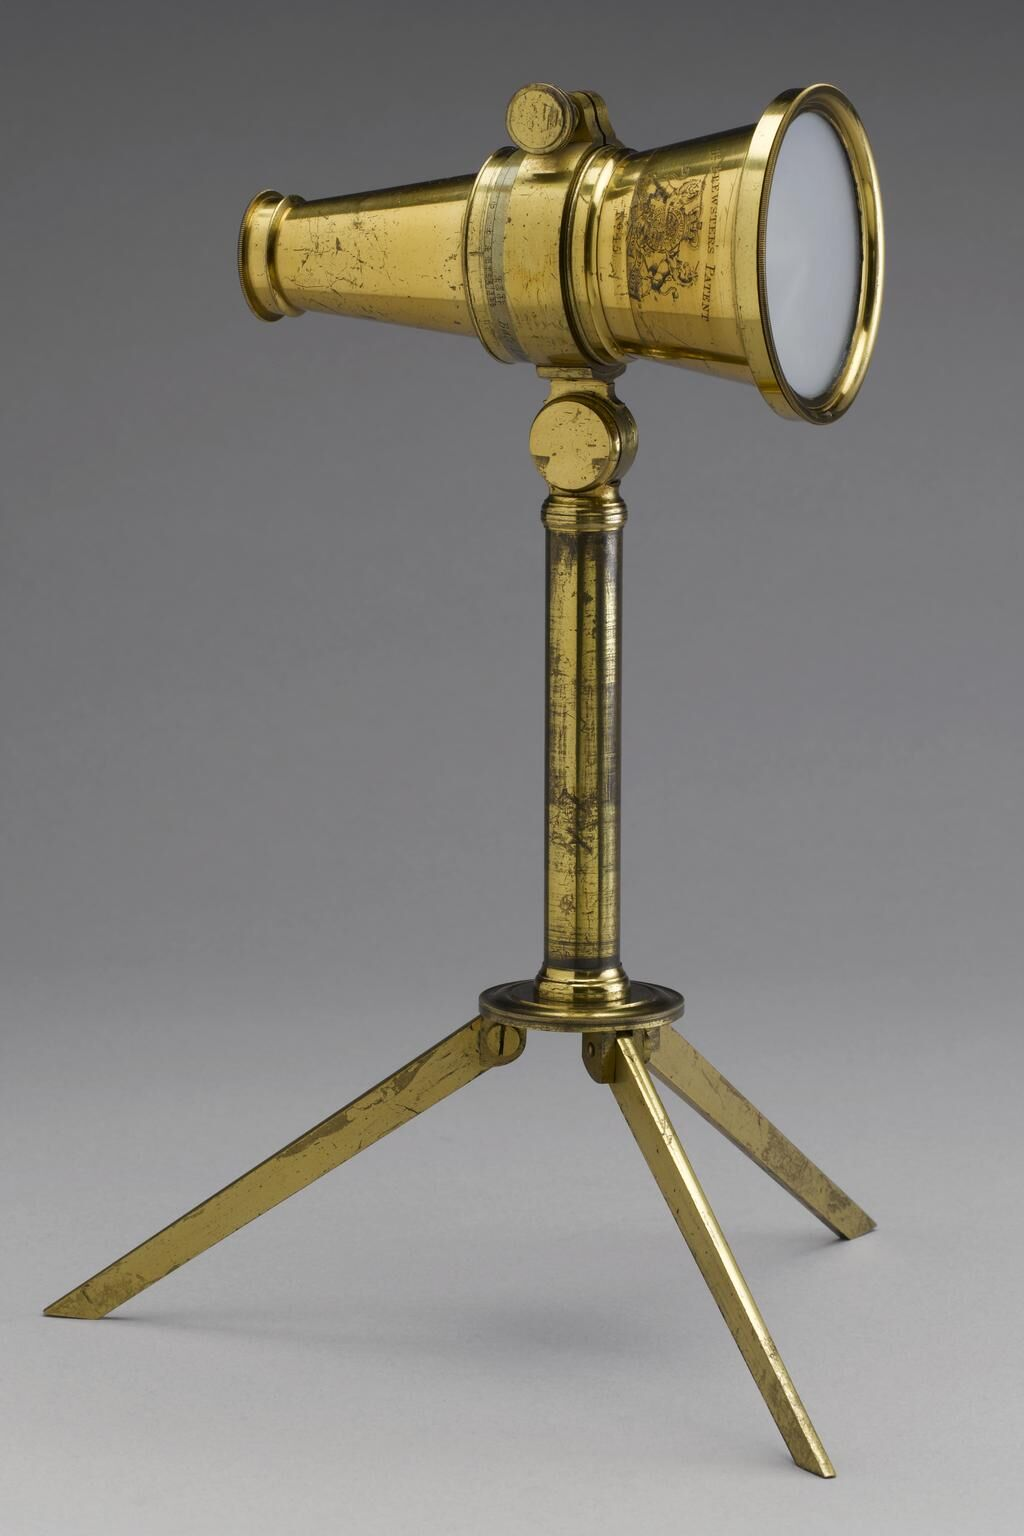 Brewster type kaleidoscope on tripod mount, by Robert Brettell Bate, c. 1820. © The Board of Trustees of the Science Museum. Courtesy of the Science Museum Group.